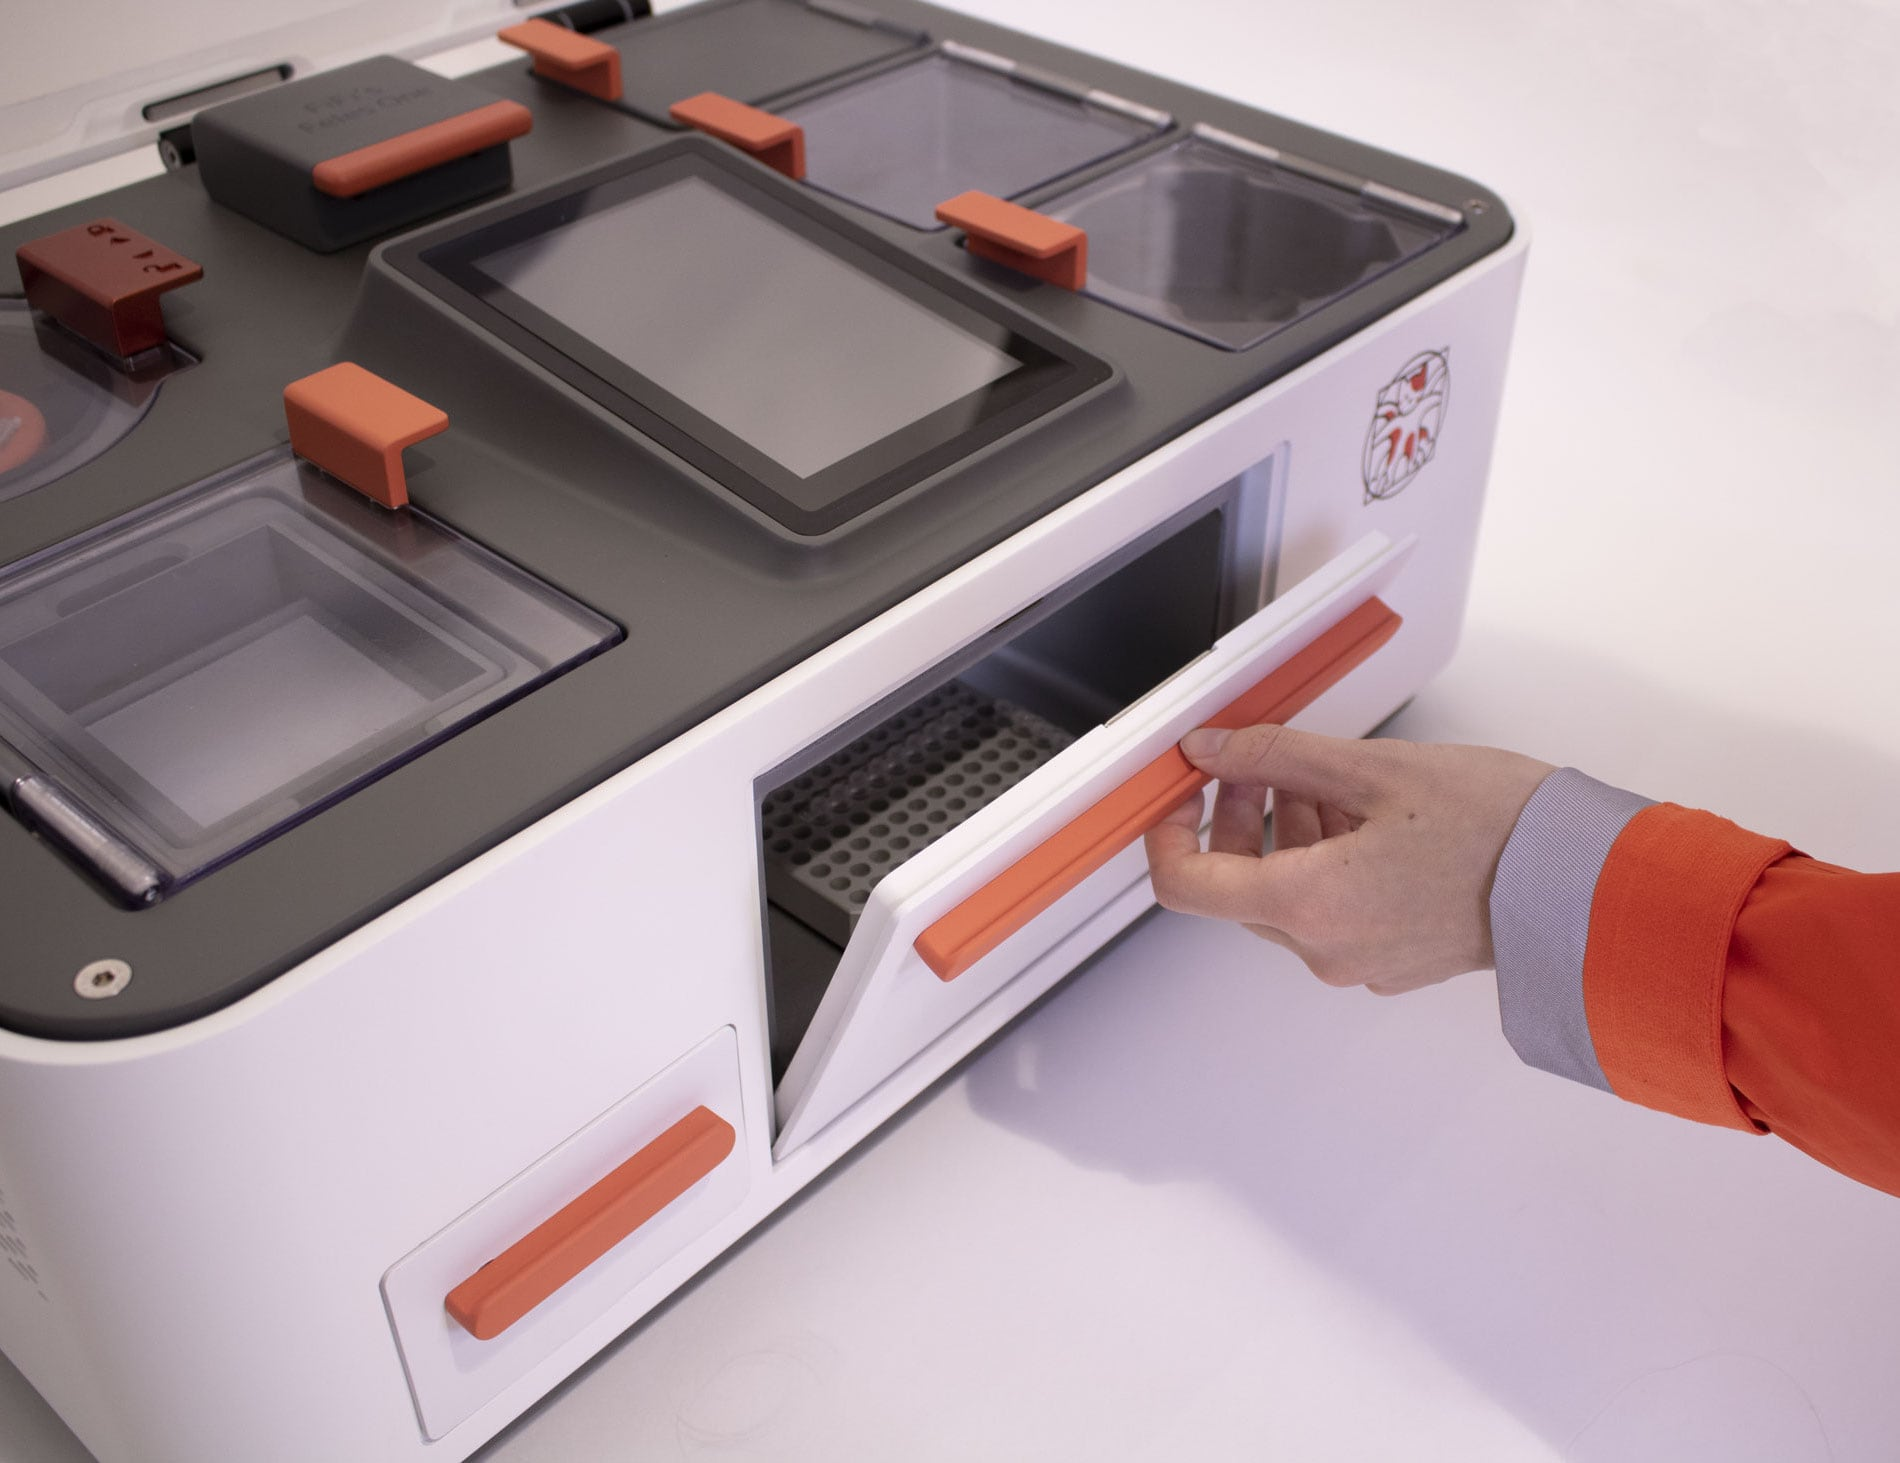 Feles One Complete Desktop Biolab brings discovery to your home